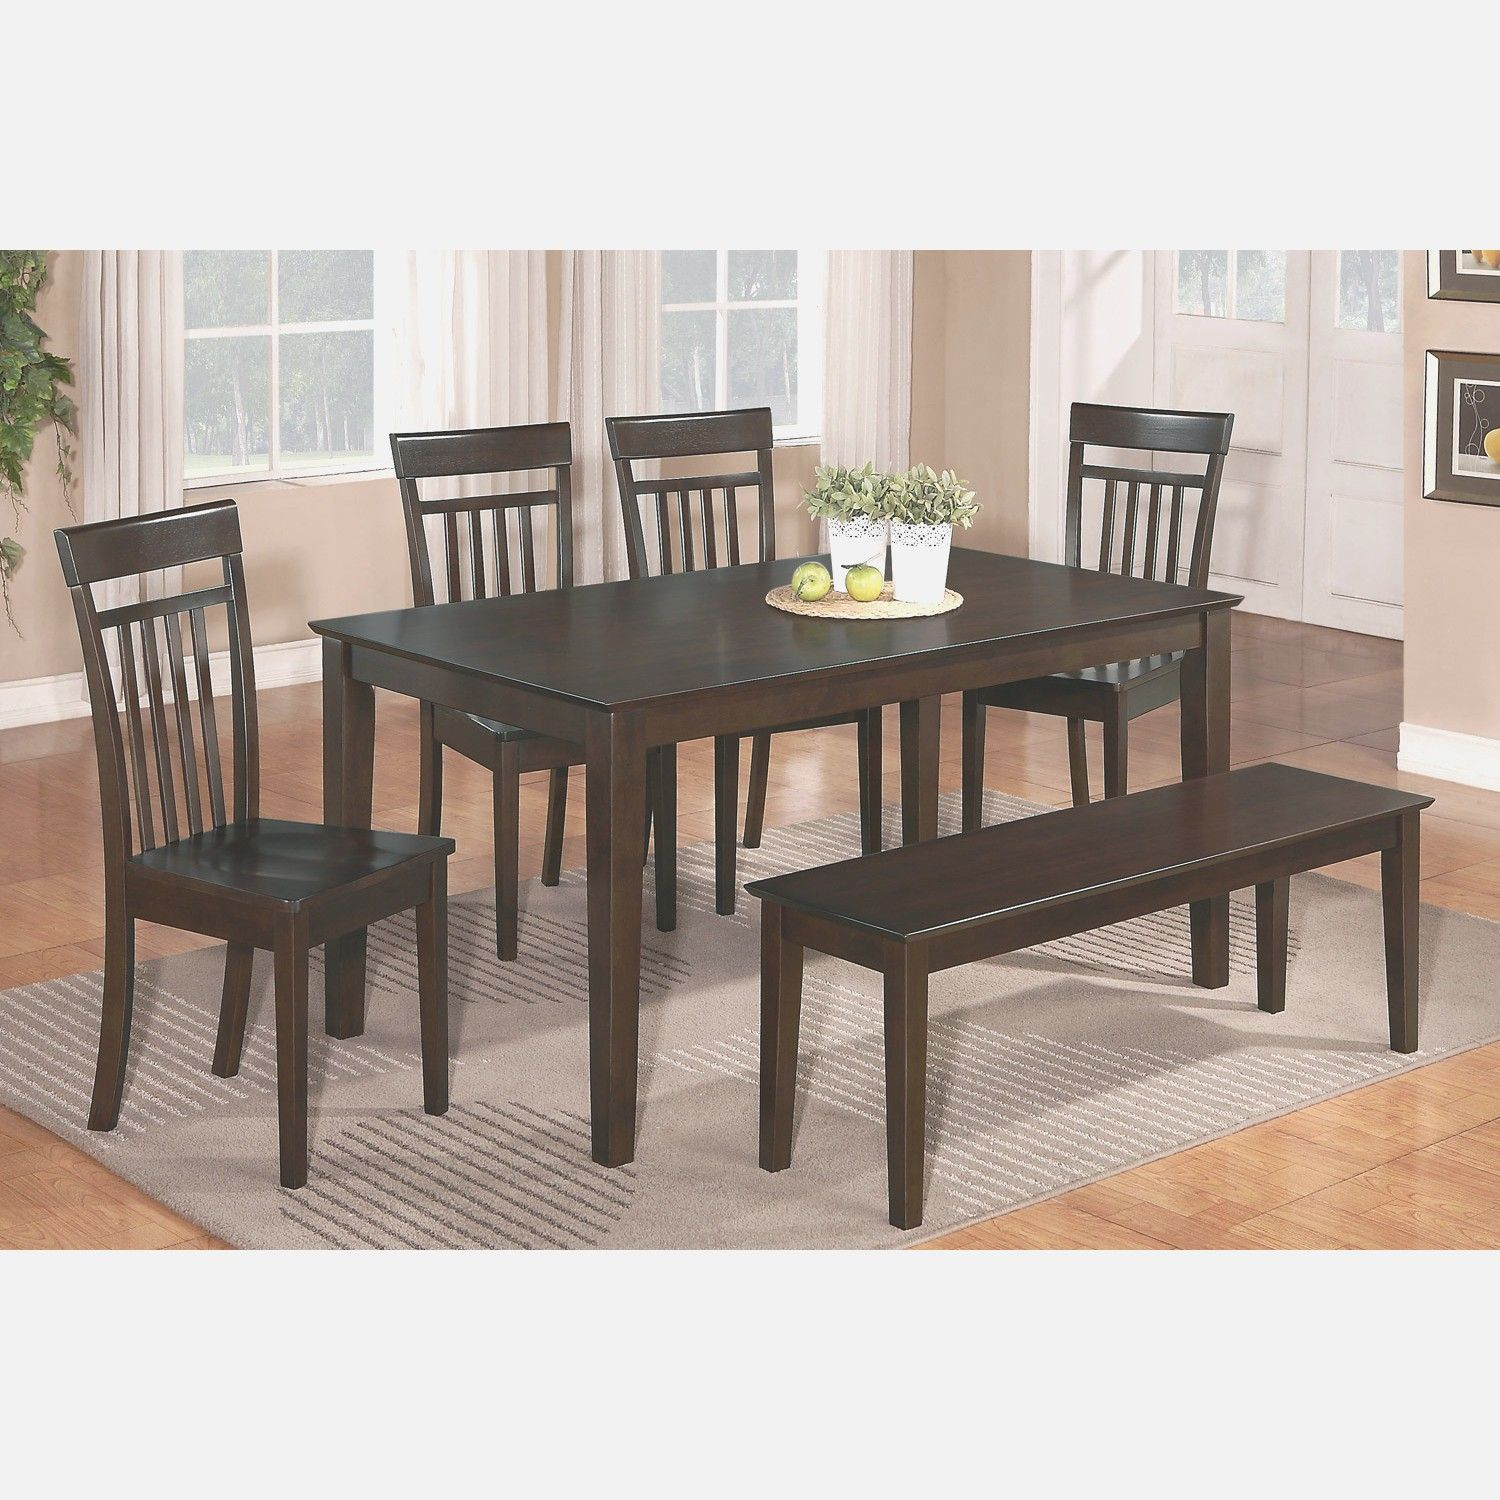 6 Piece Kitchen Table Sets 6